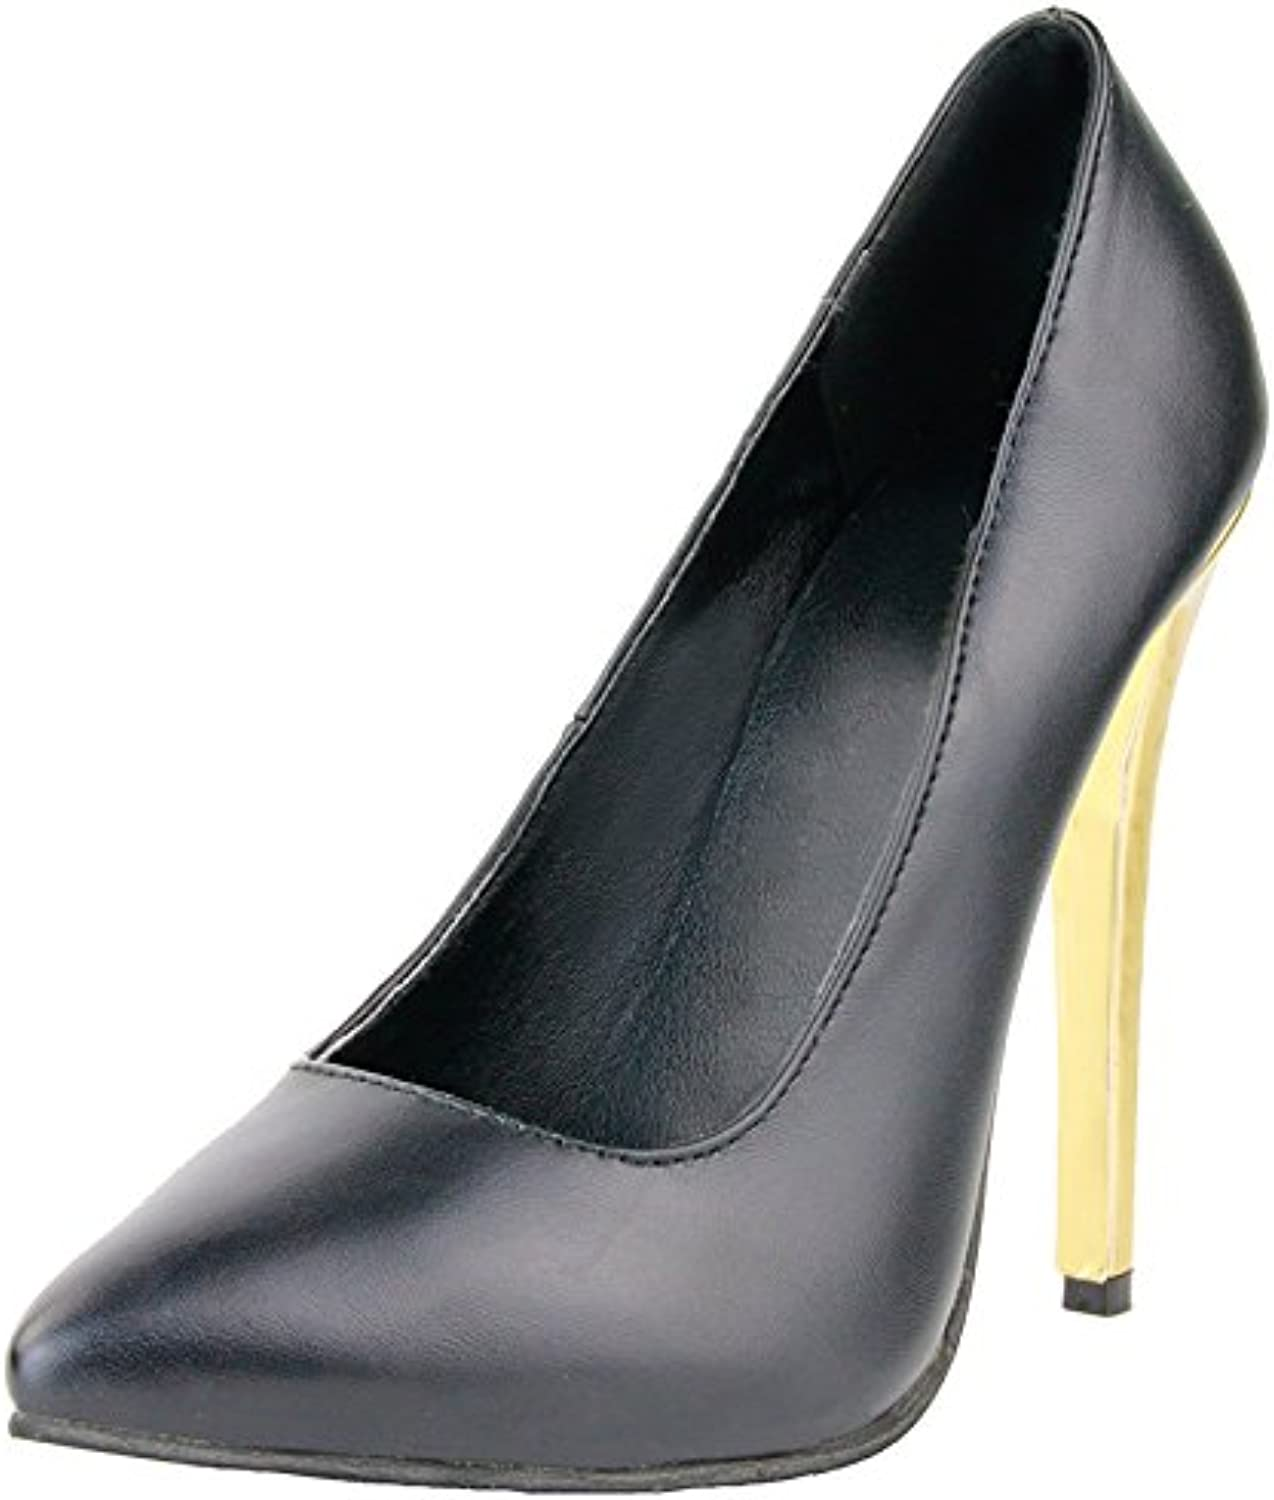 A-BUYBEA Women's Stiletto 4.33  Sky High Dress Pump shoes with Leather Shafts